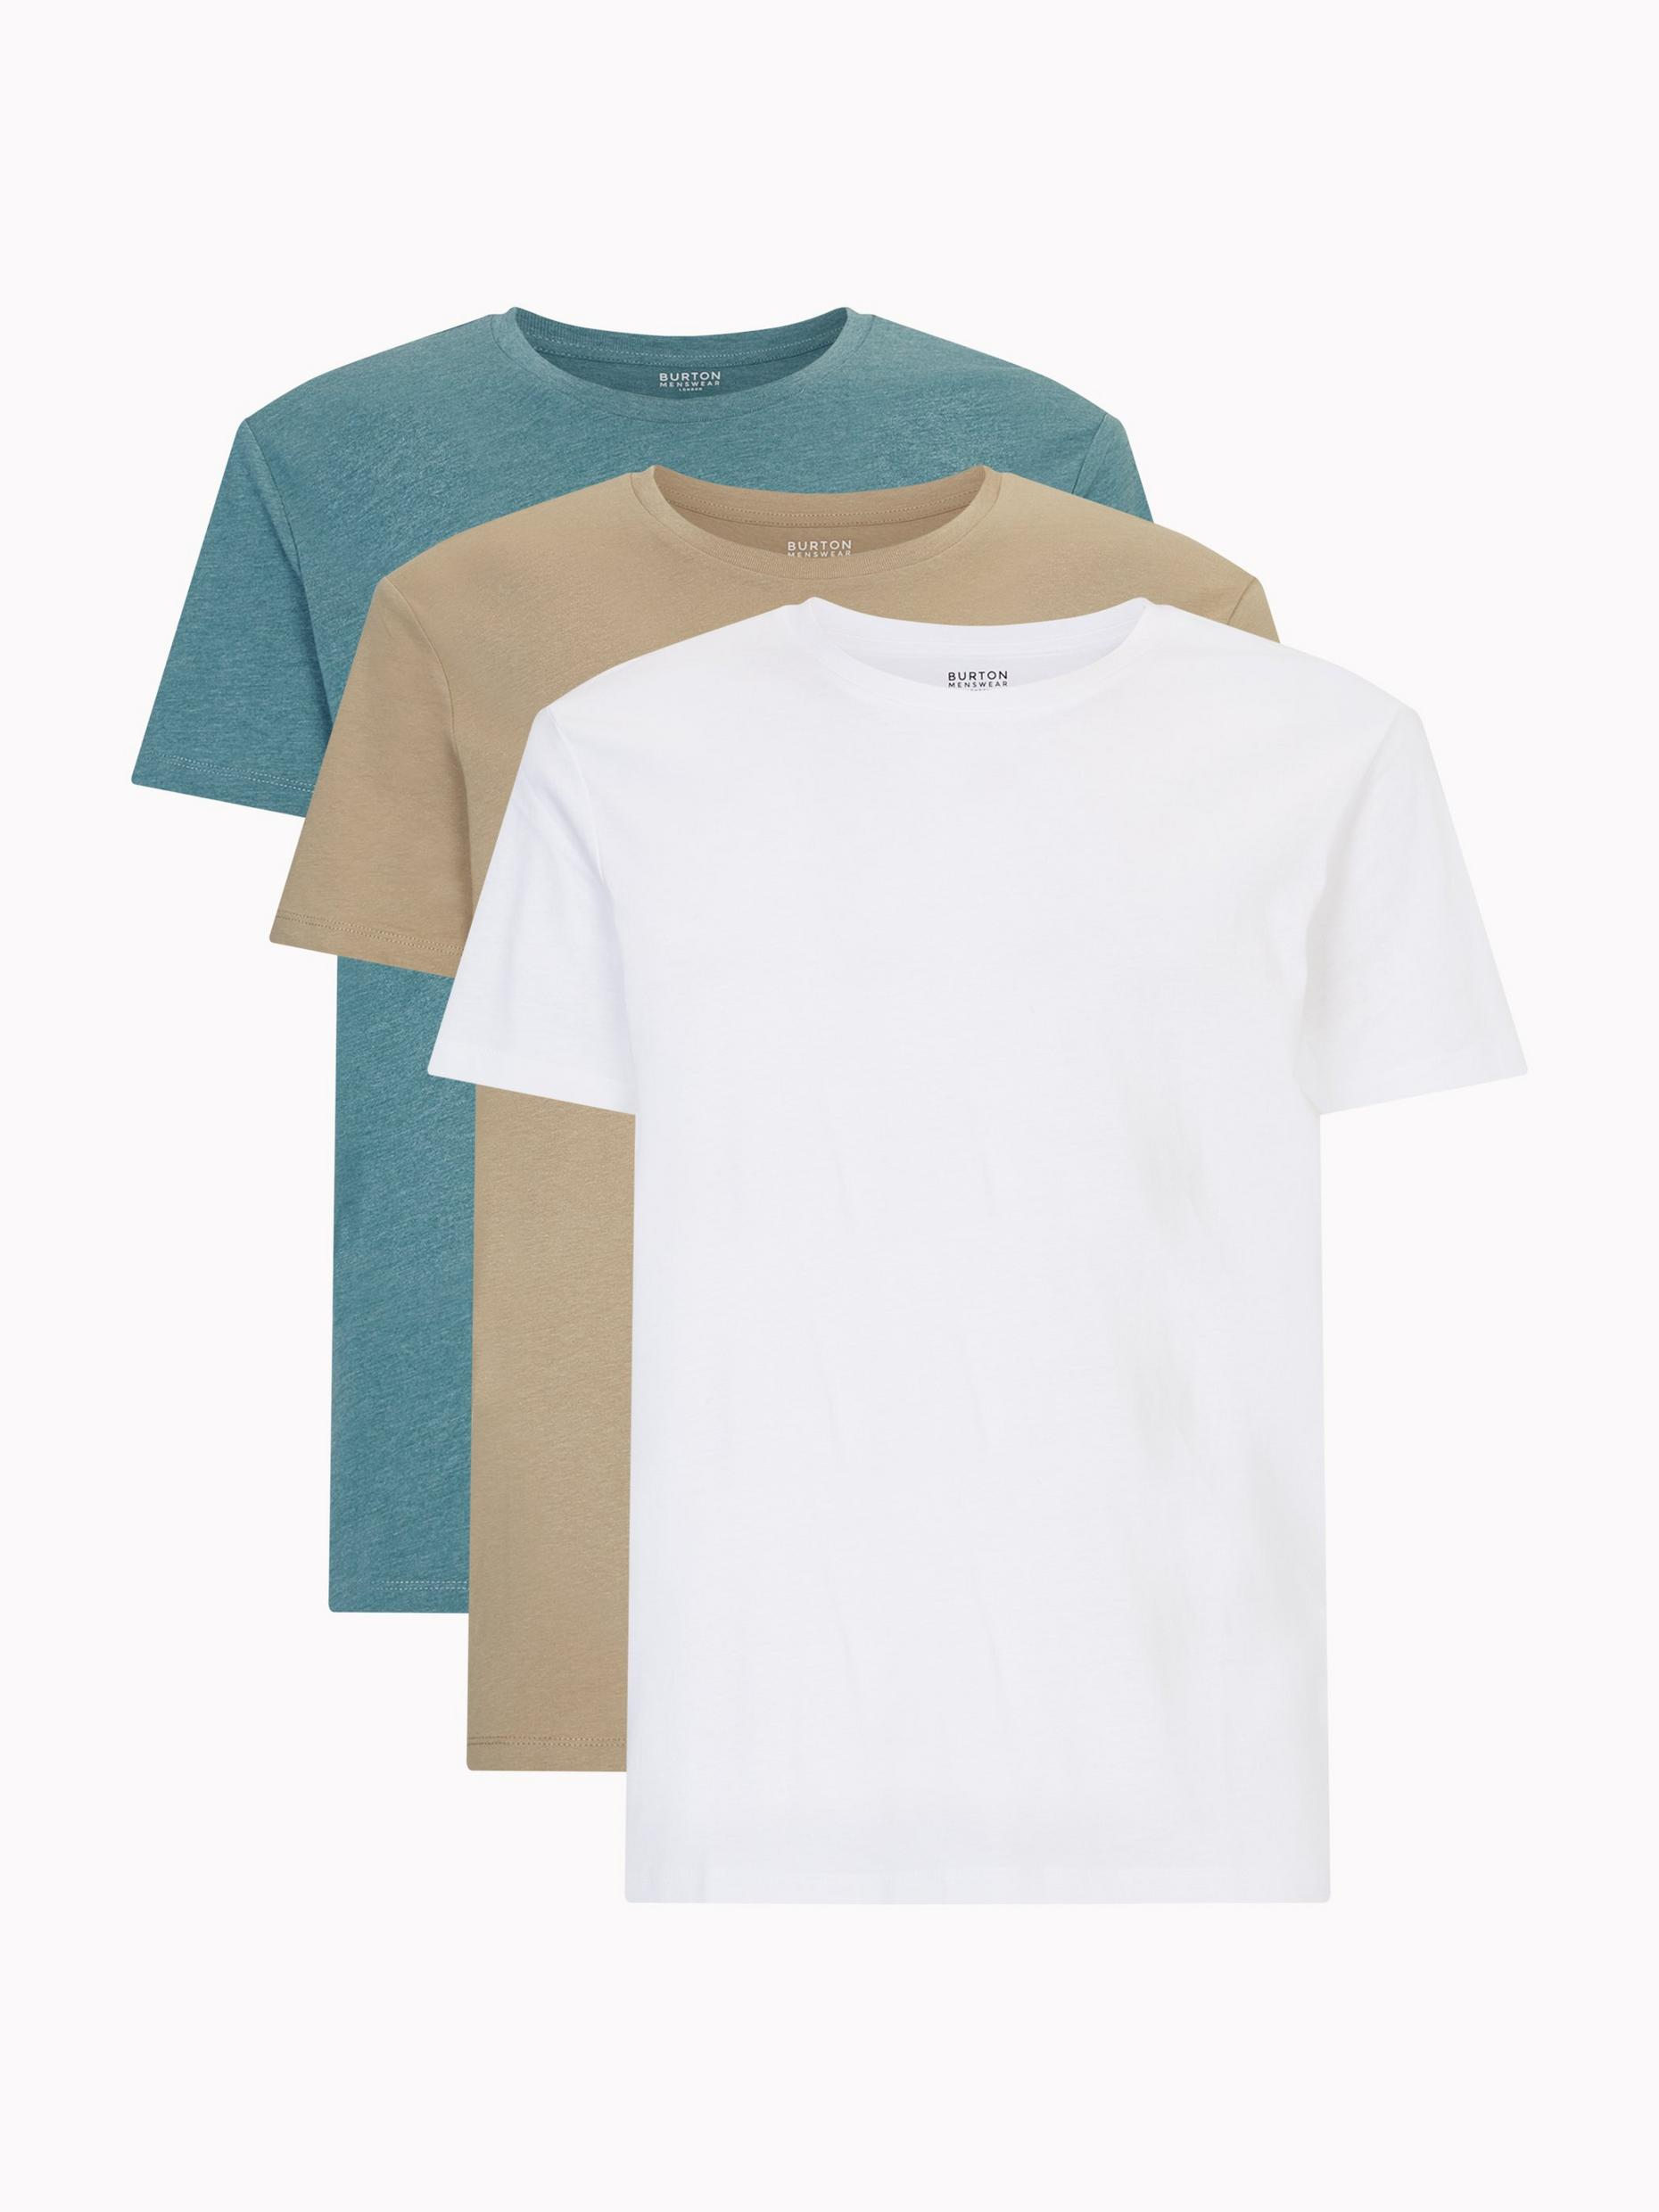 3 Pack White, Stone and Duck Egg Organic T-Shirts